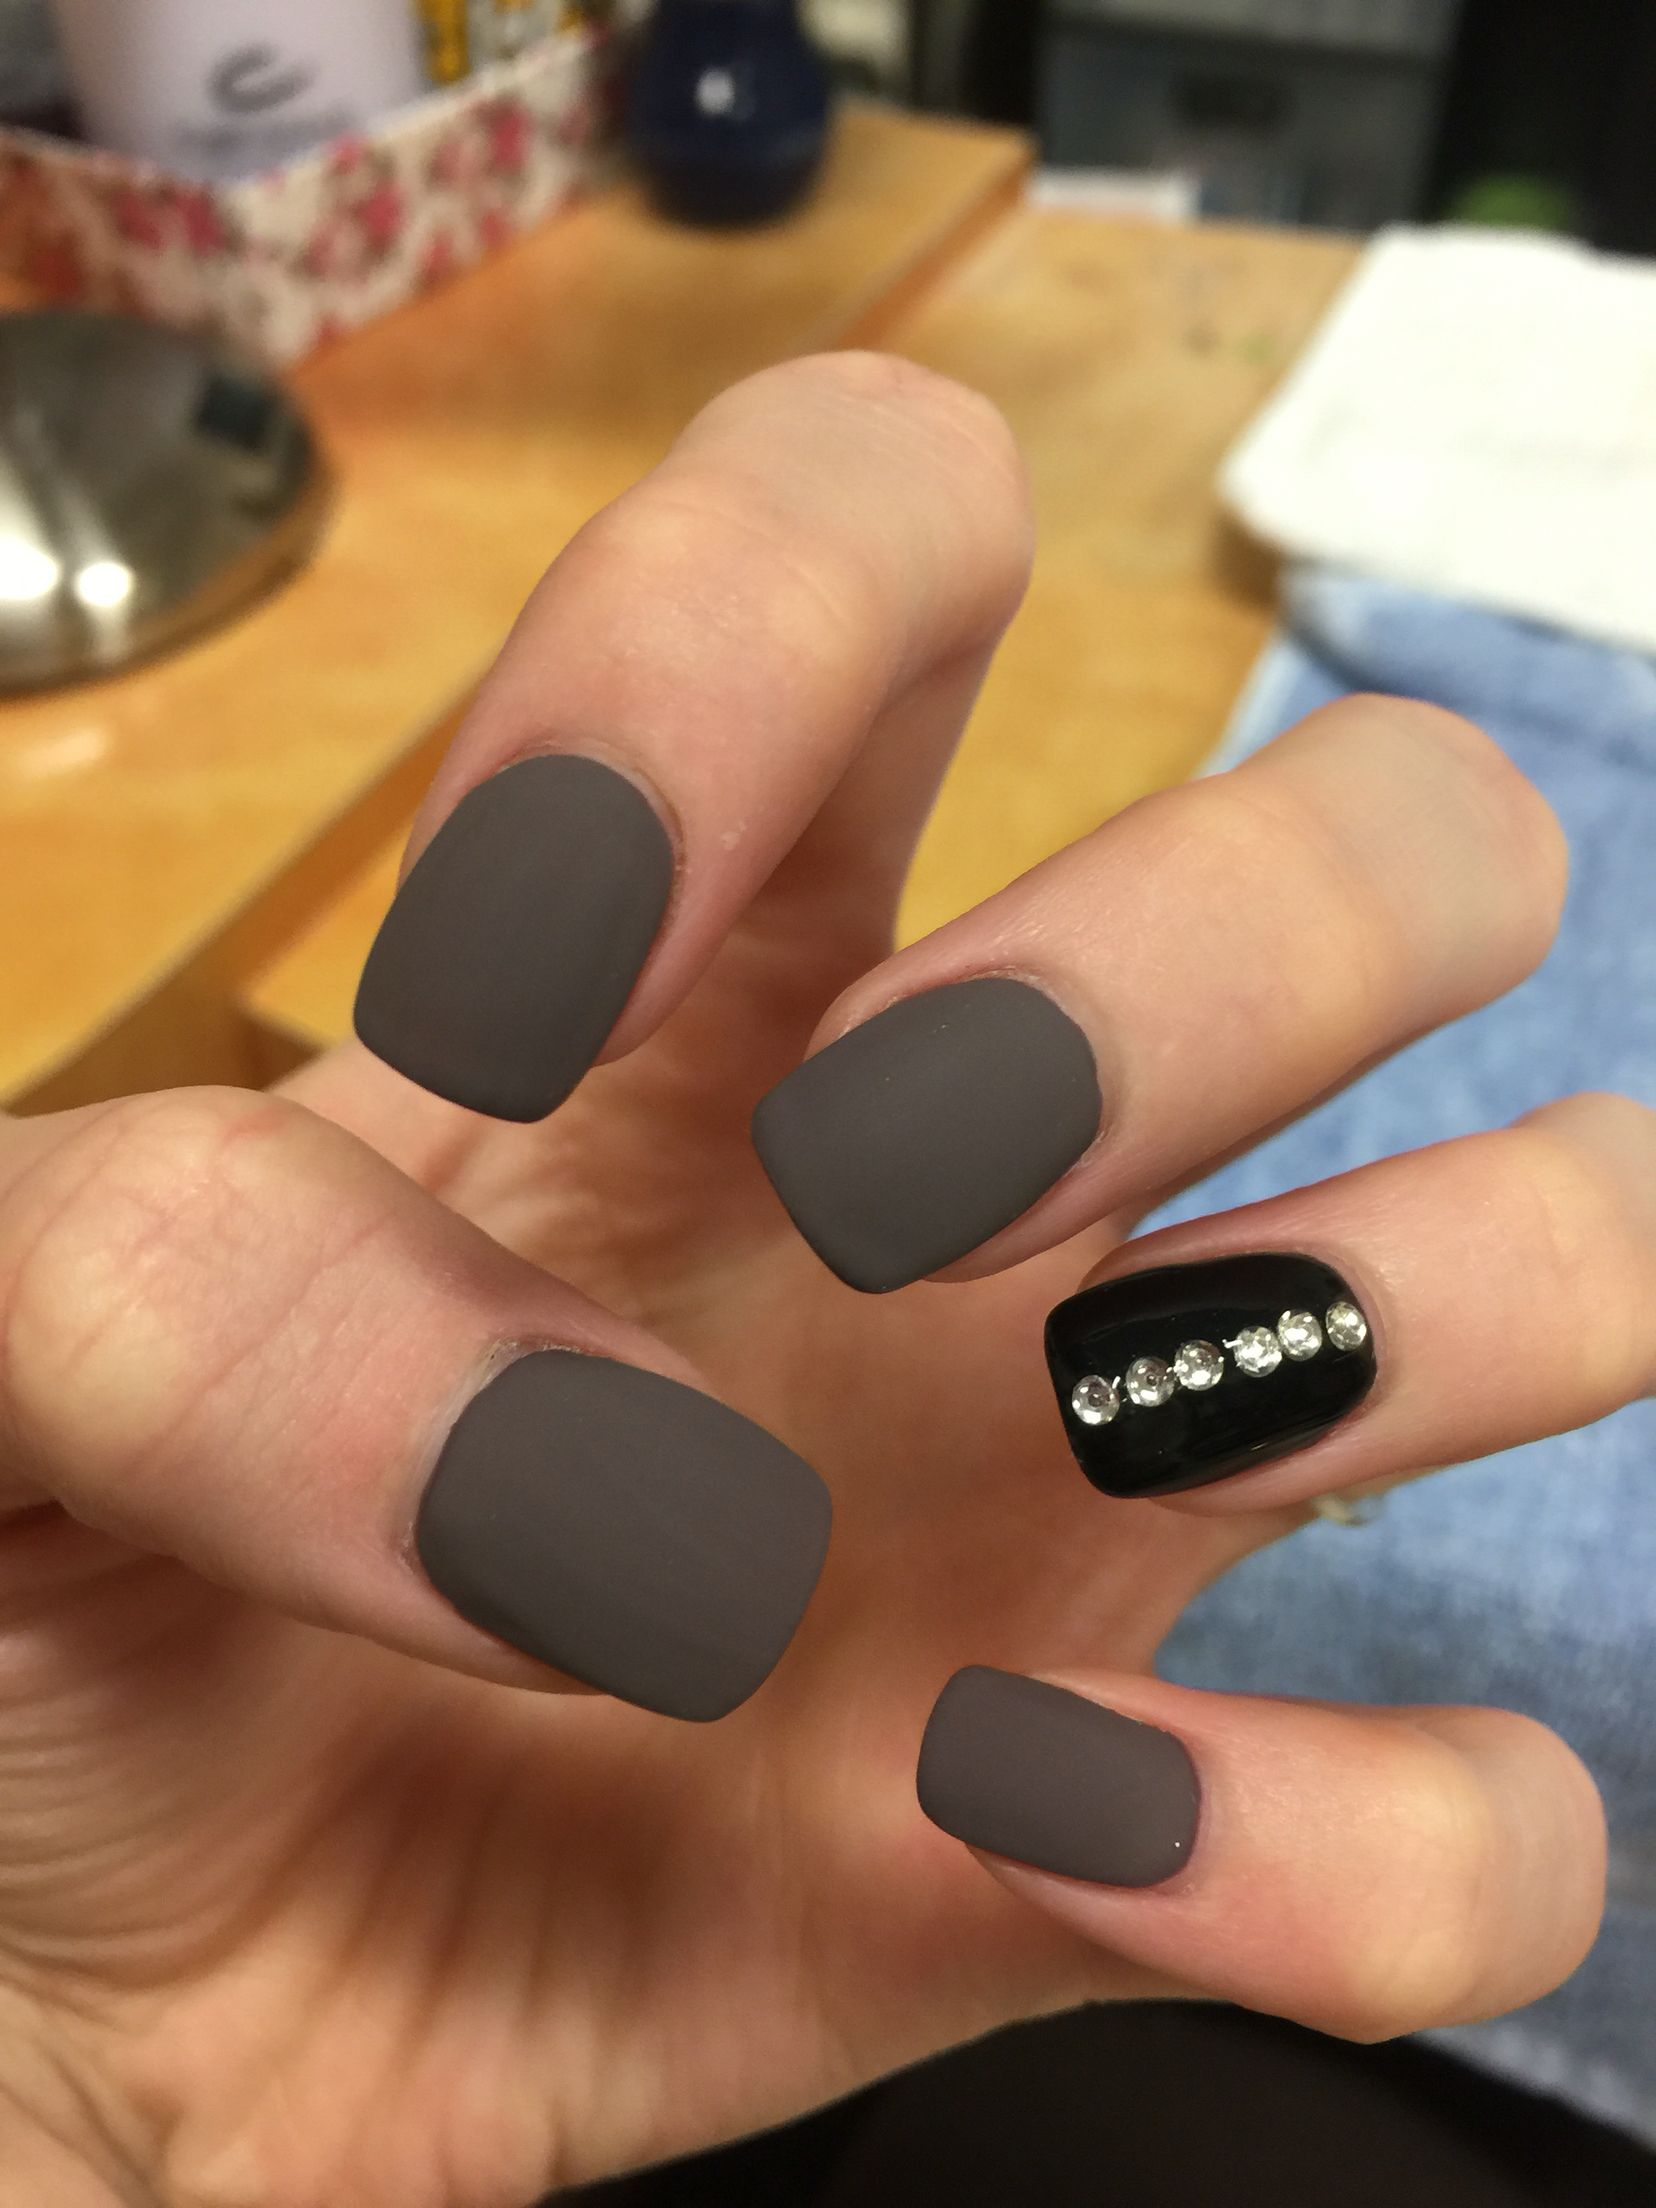 Matte Nails With Black Ring Finger And Rhinestone Design So Cute